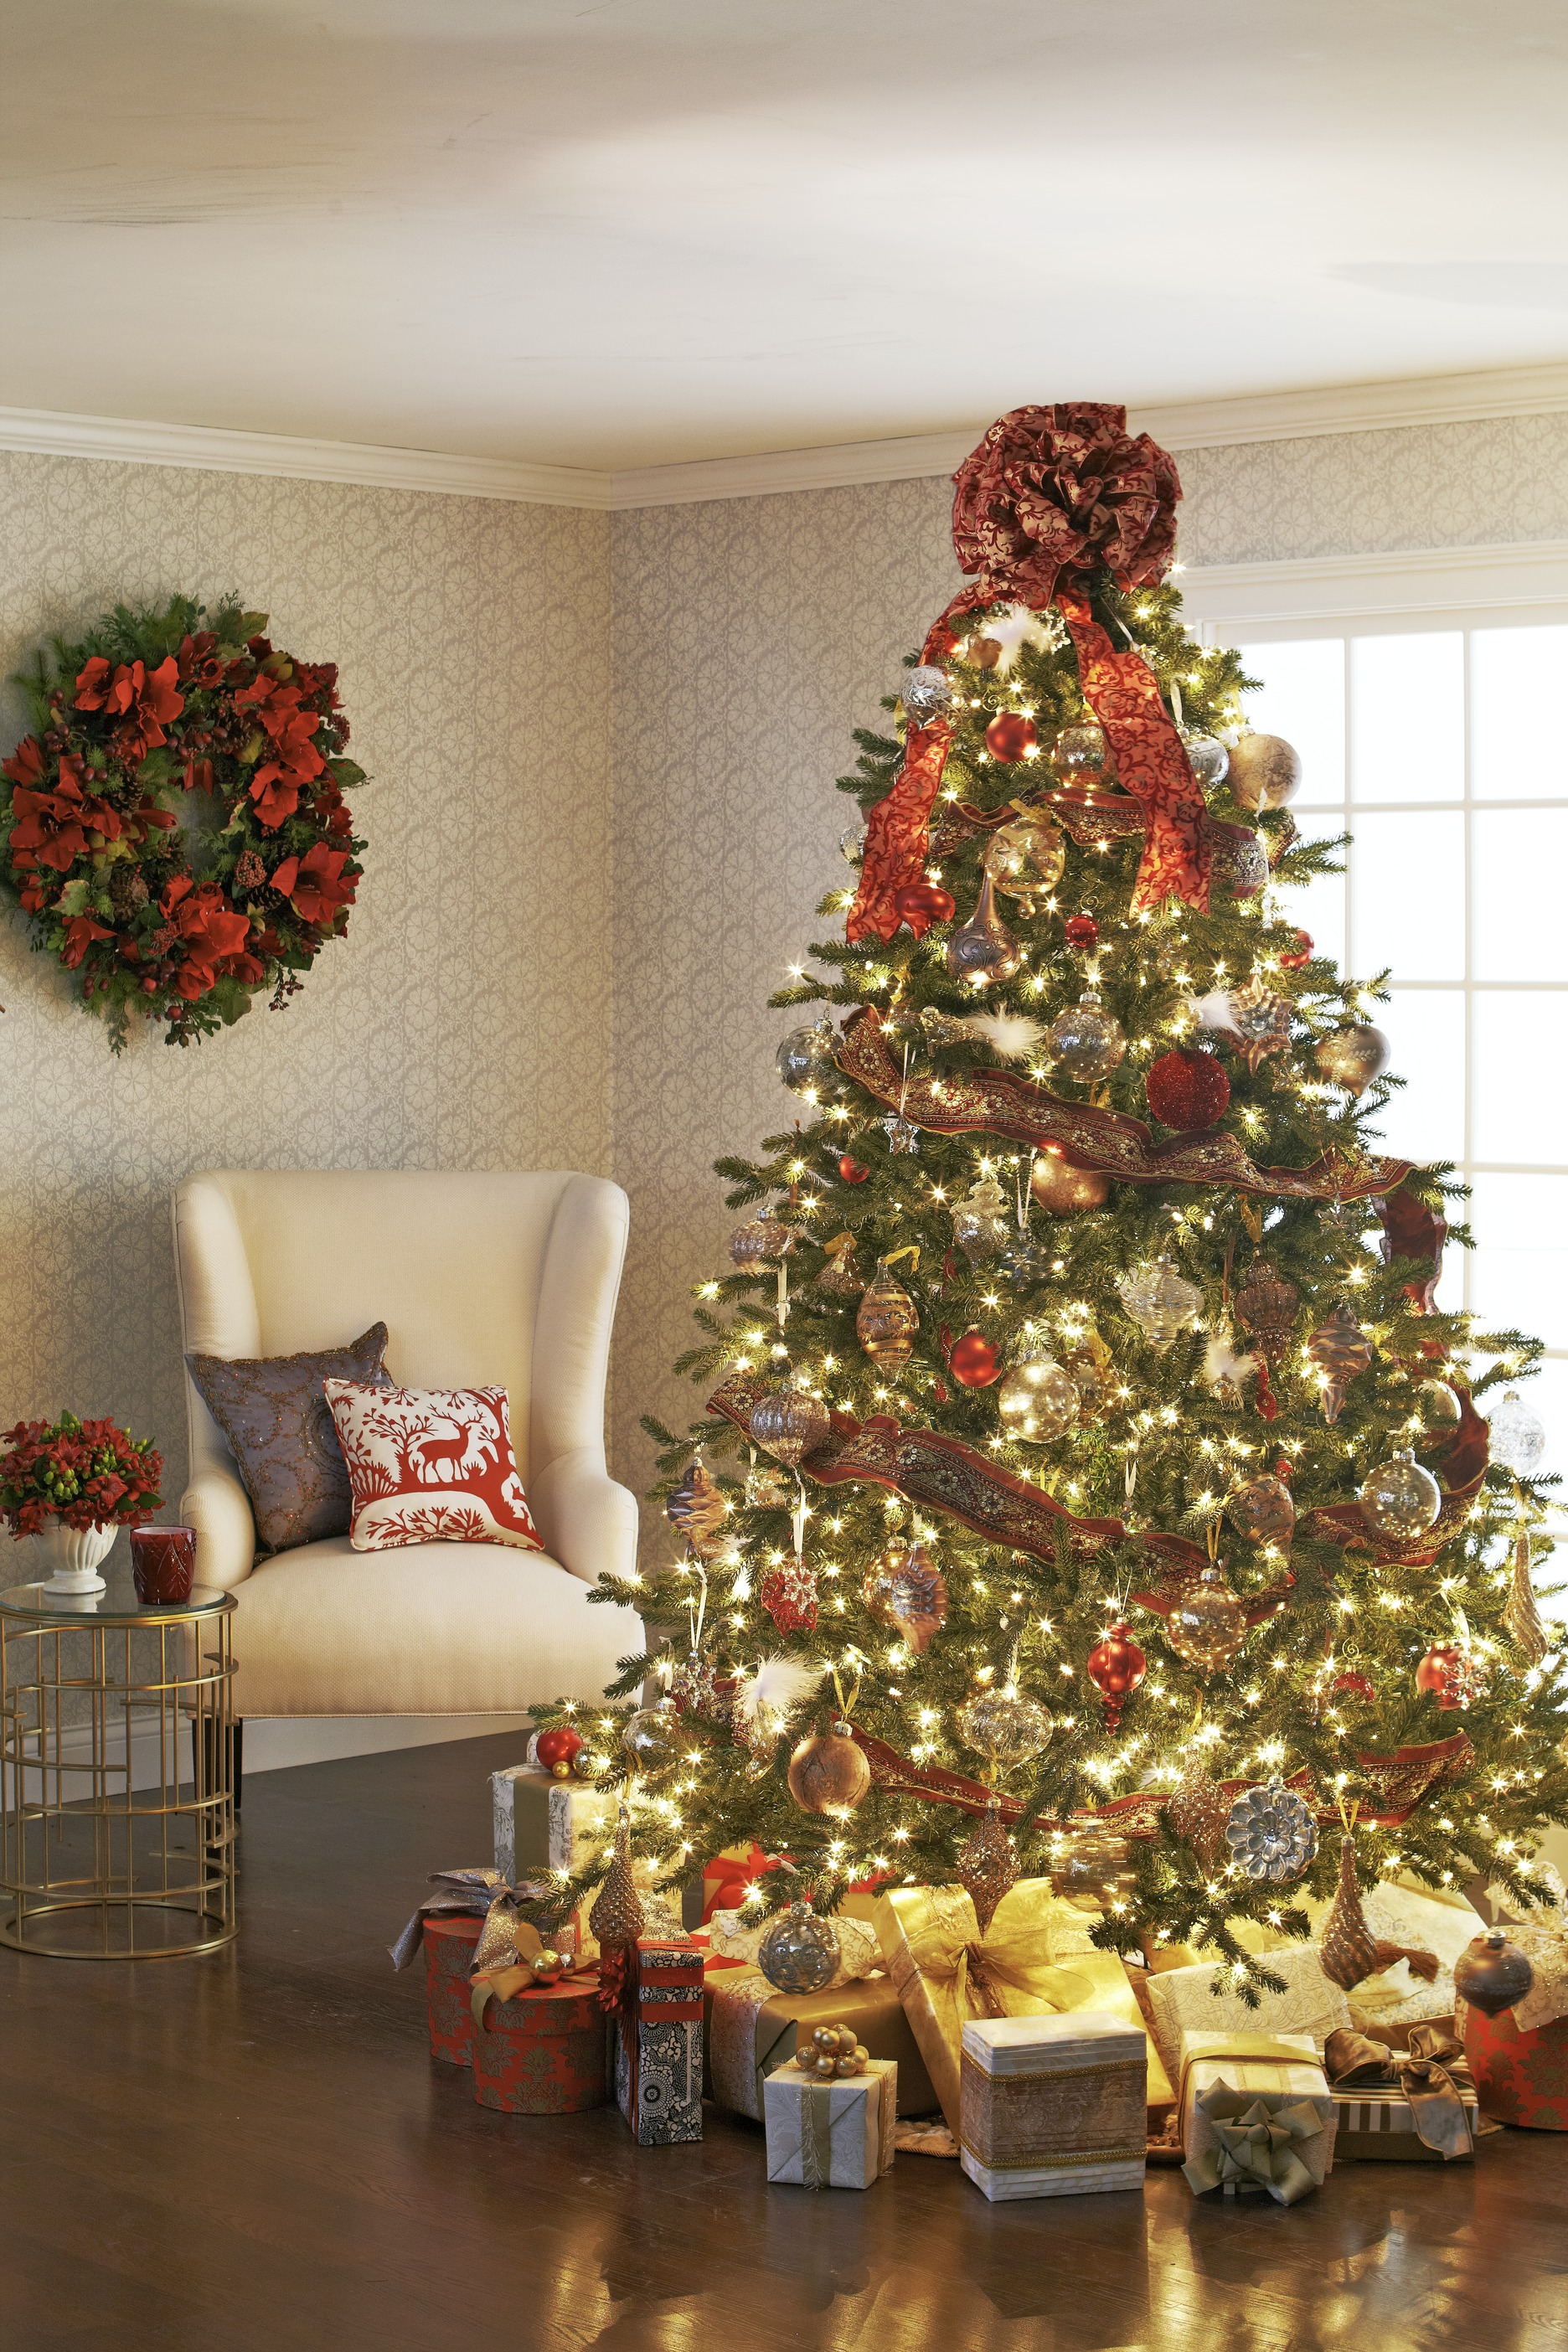 enlarge - Christmas Tree And Decorations